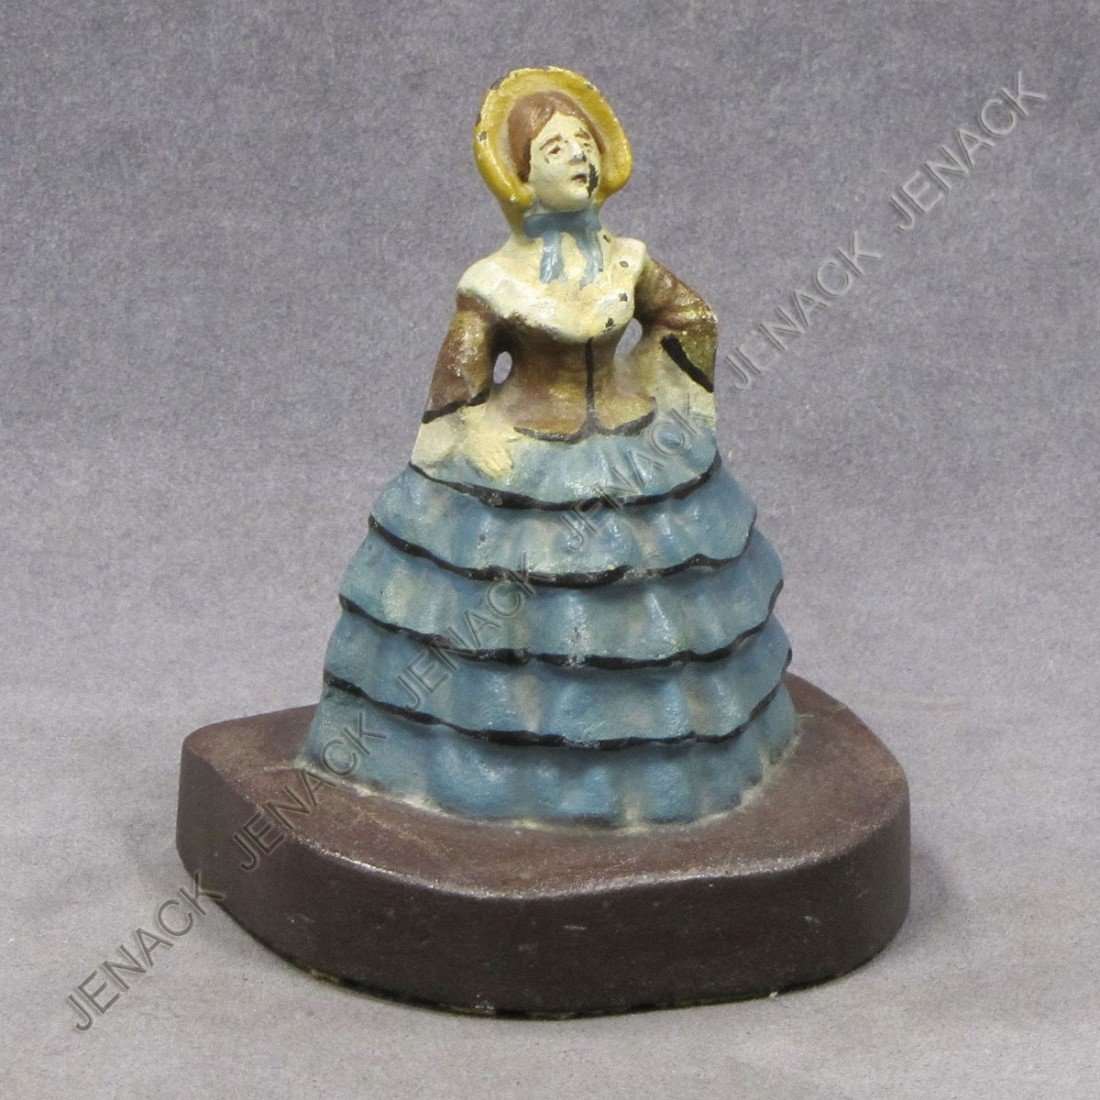 16: CAST IRON COLONIAL LADY WITH BONNET DOORSTOP